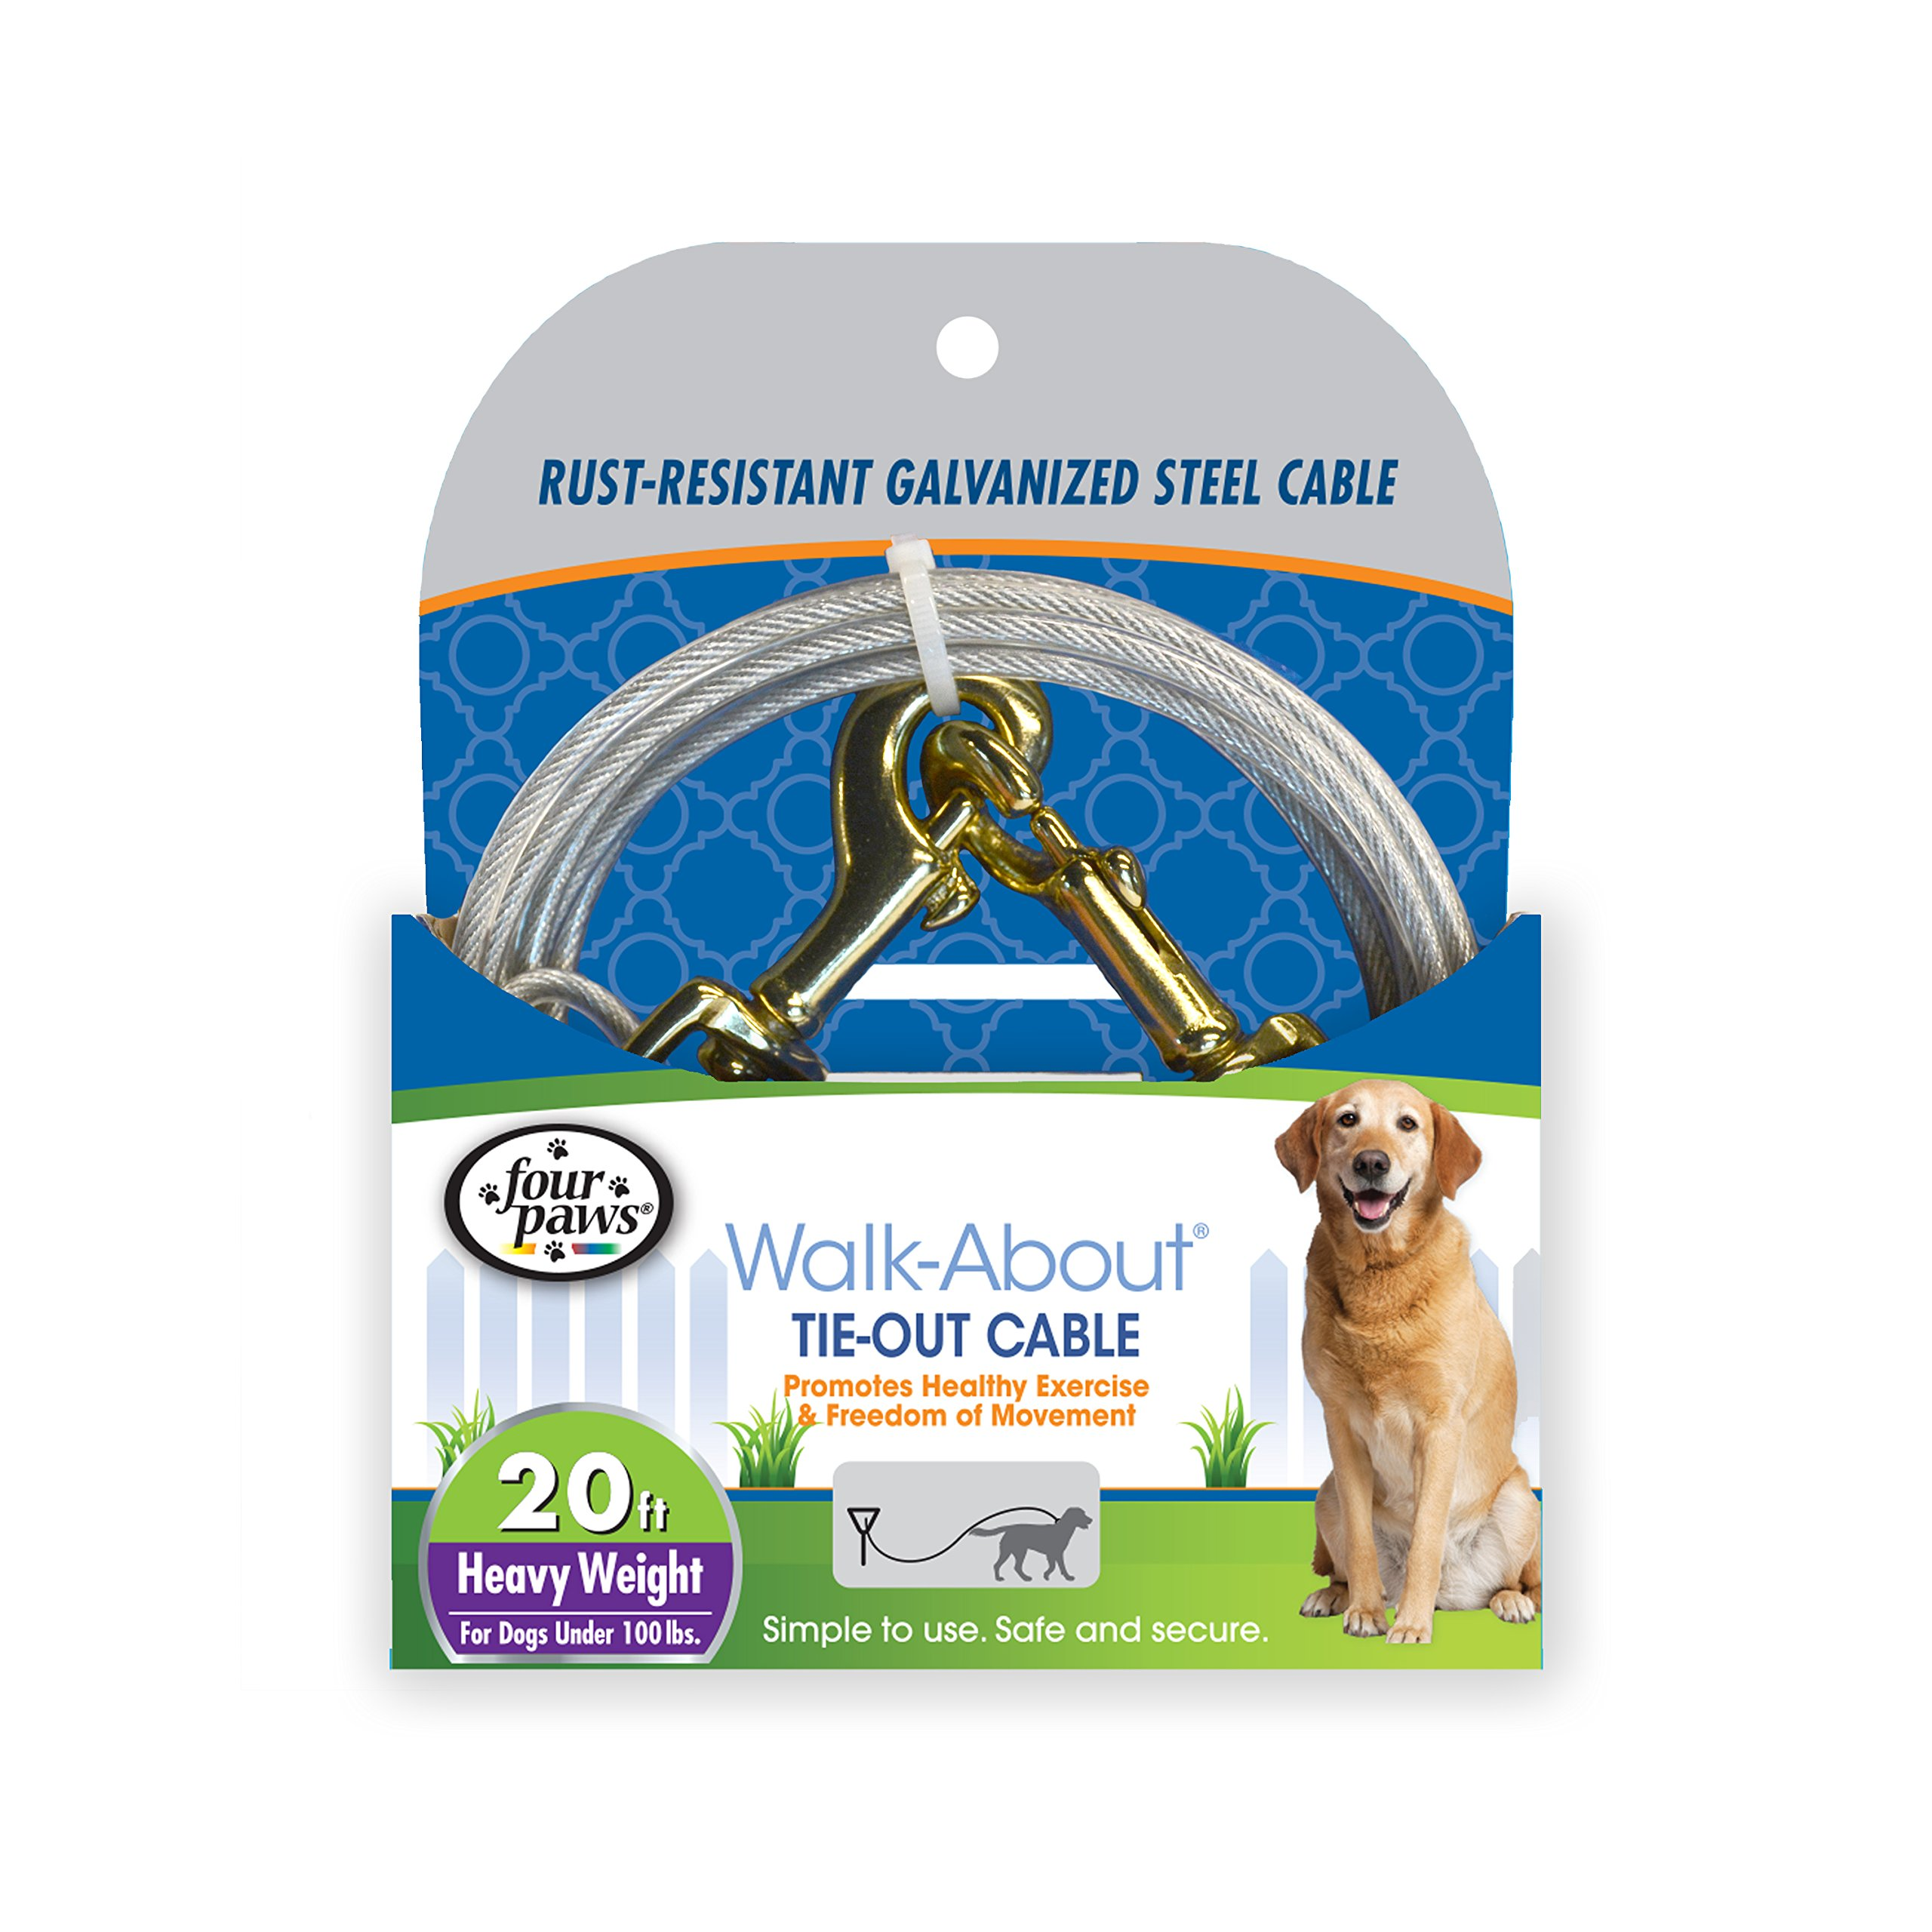 Four Paws Heavy Duty Dog Cable, 20-Foot Large Dog Tie Out Cable, Silver by Four Paws